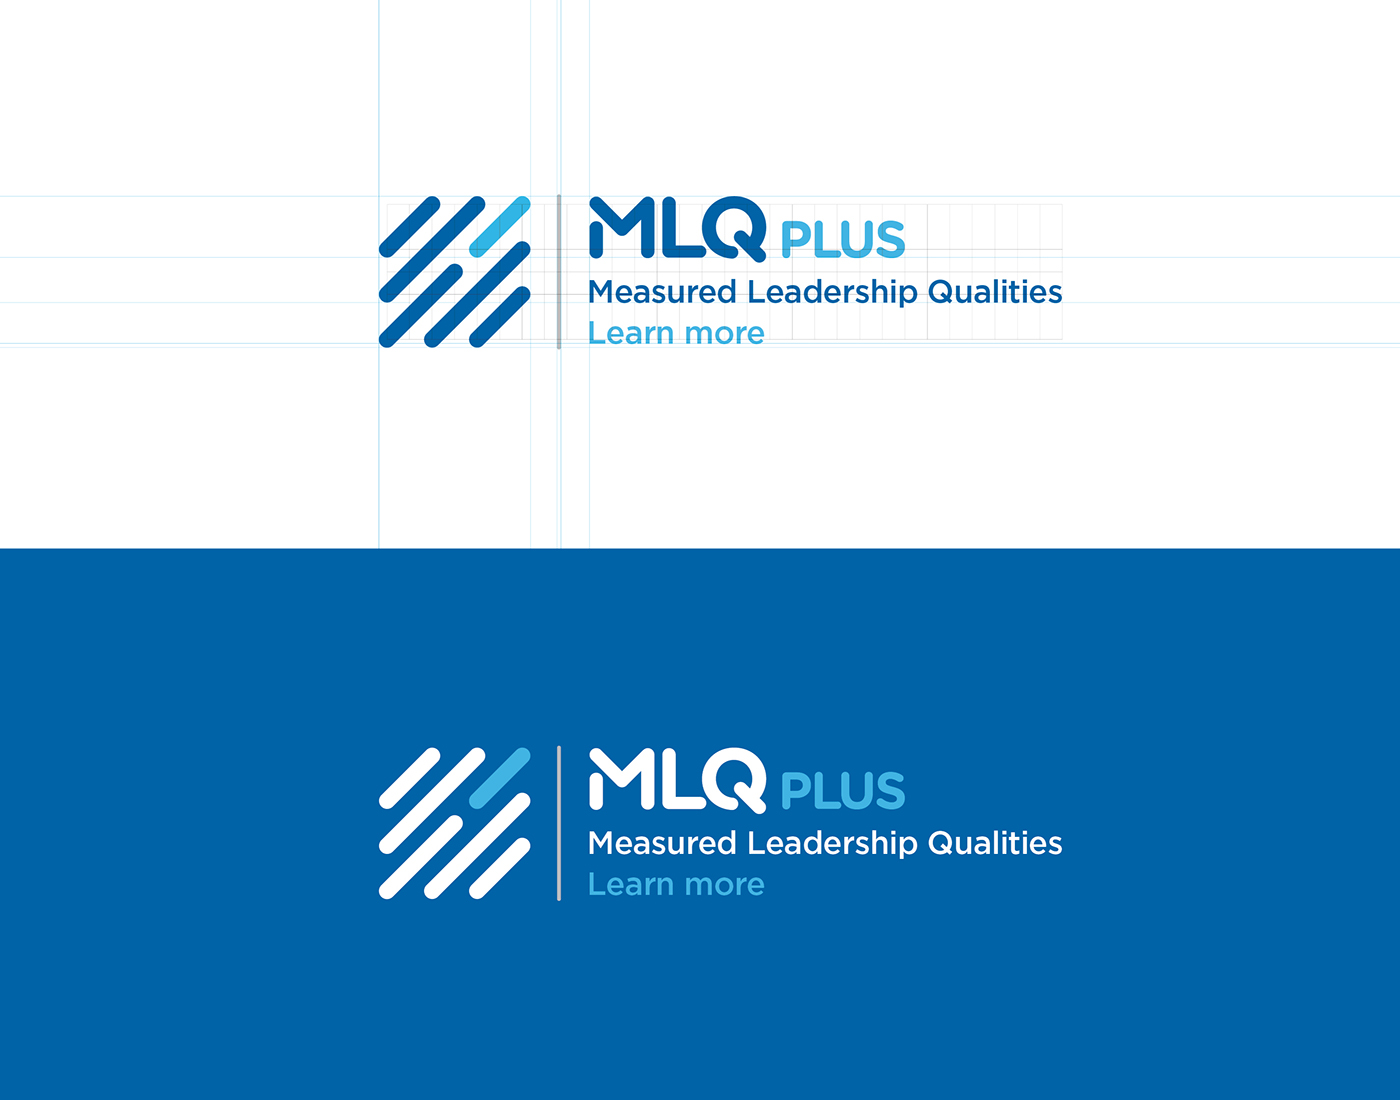 mlq plus on behance mlq plus measure the performance of individuals teams and groups and maximise their leadership performance by highlighting strengths and weaknesses